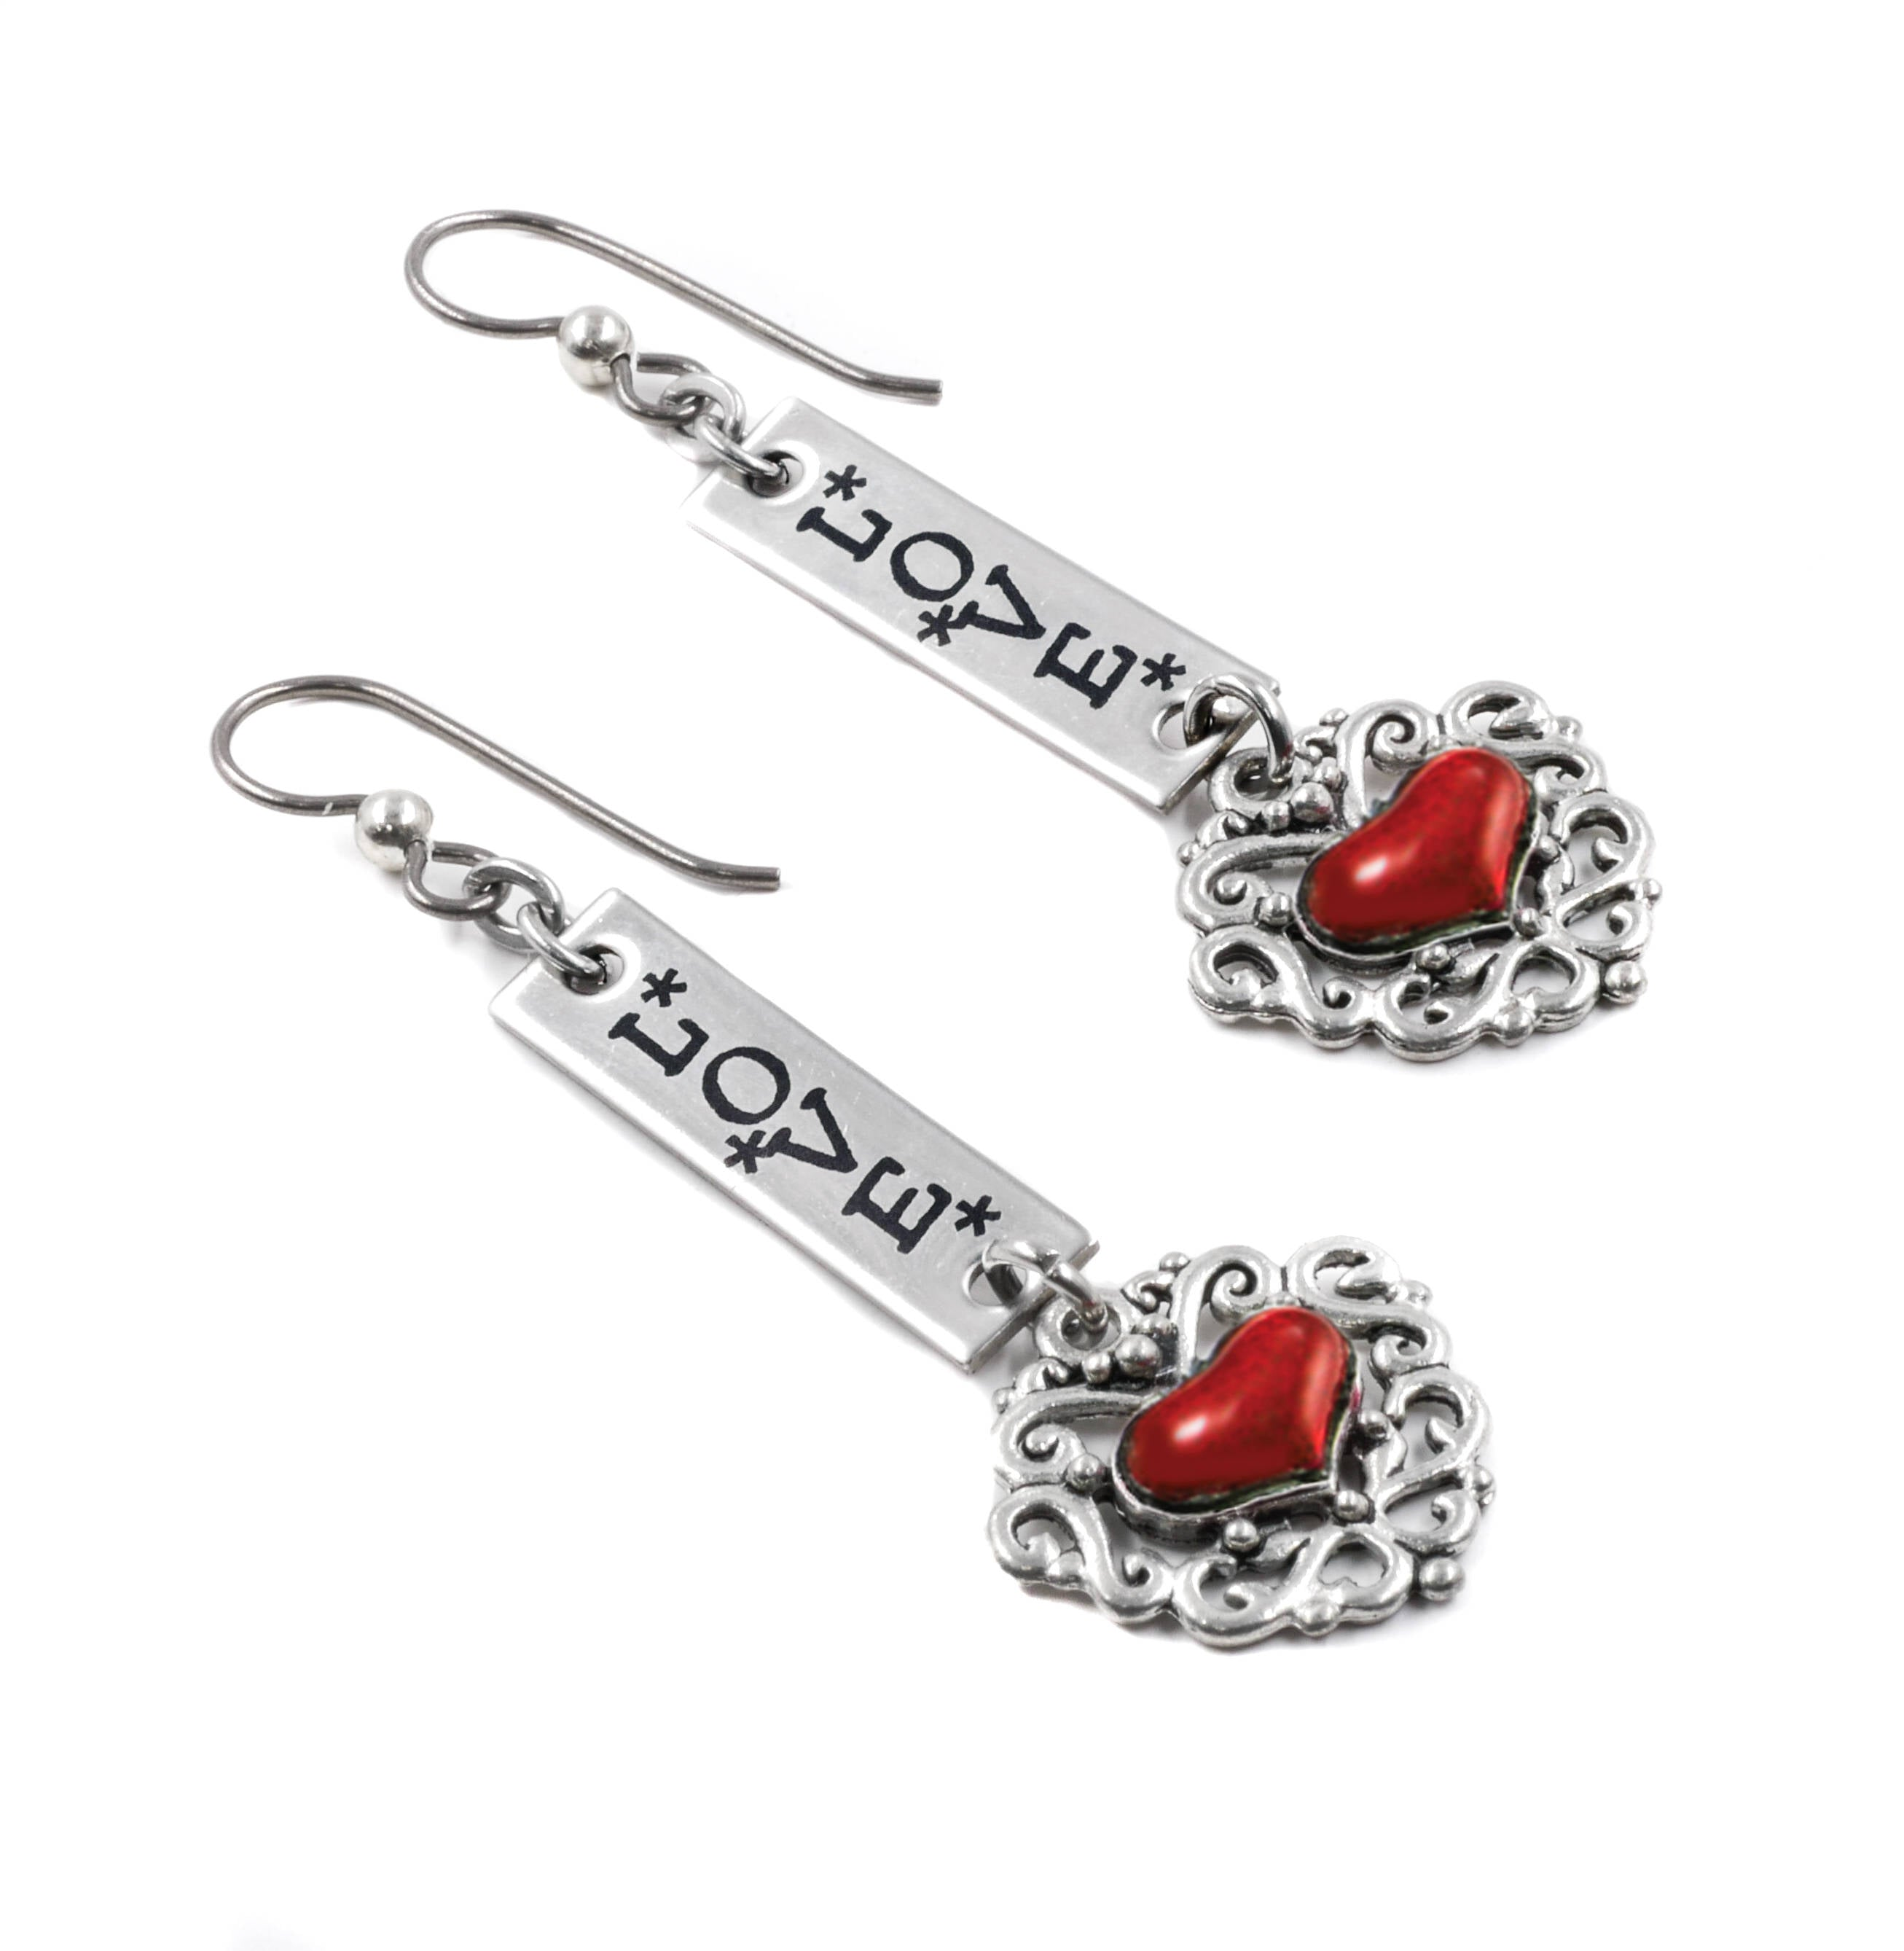 silver plated claddah earrings your choice of ear wires